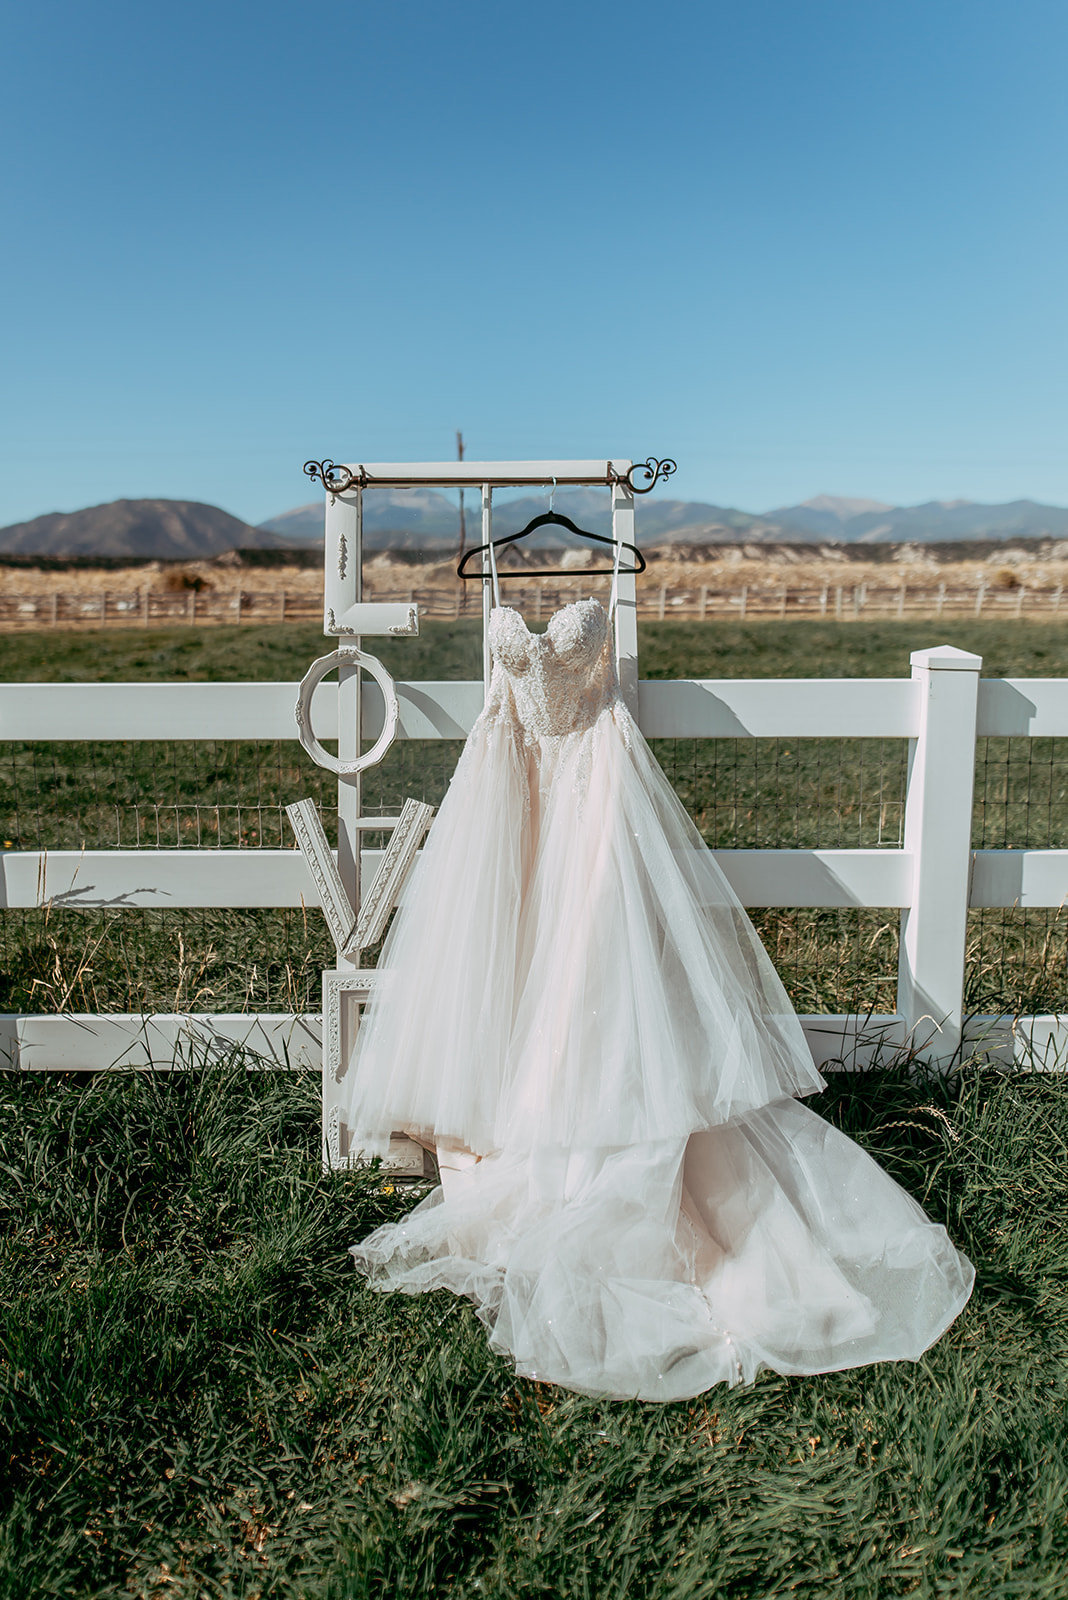 Chelsea Kyaw Photo-Colorado Wedding Photographer-Details011